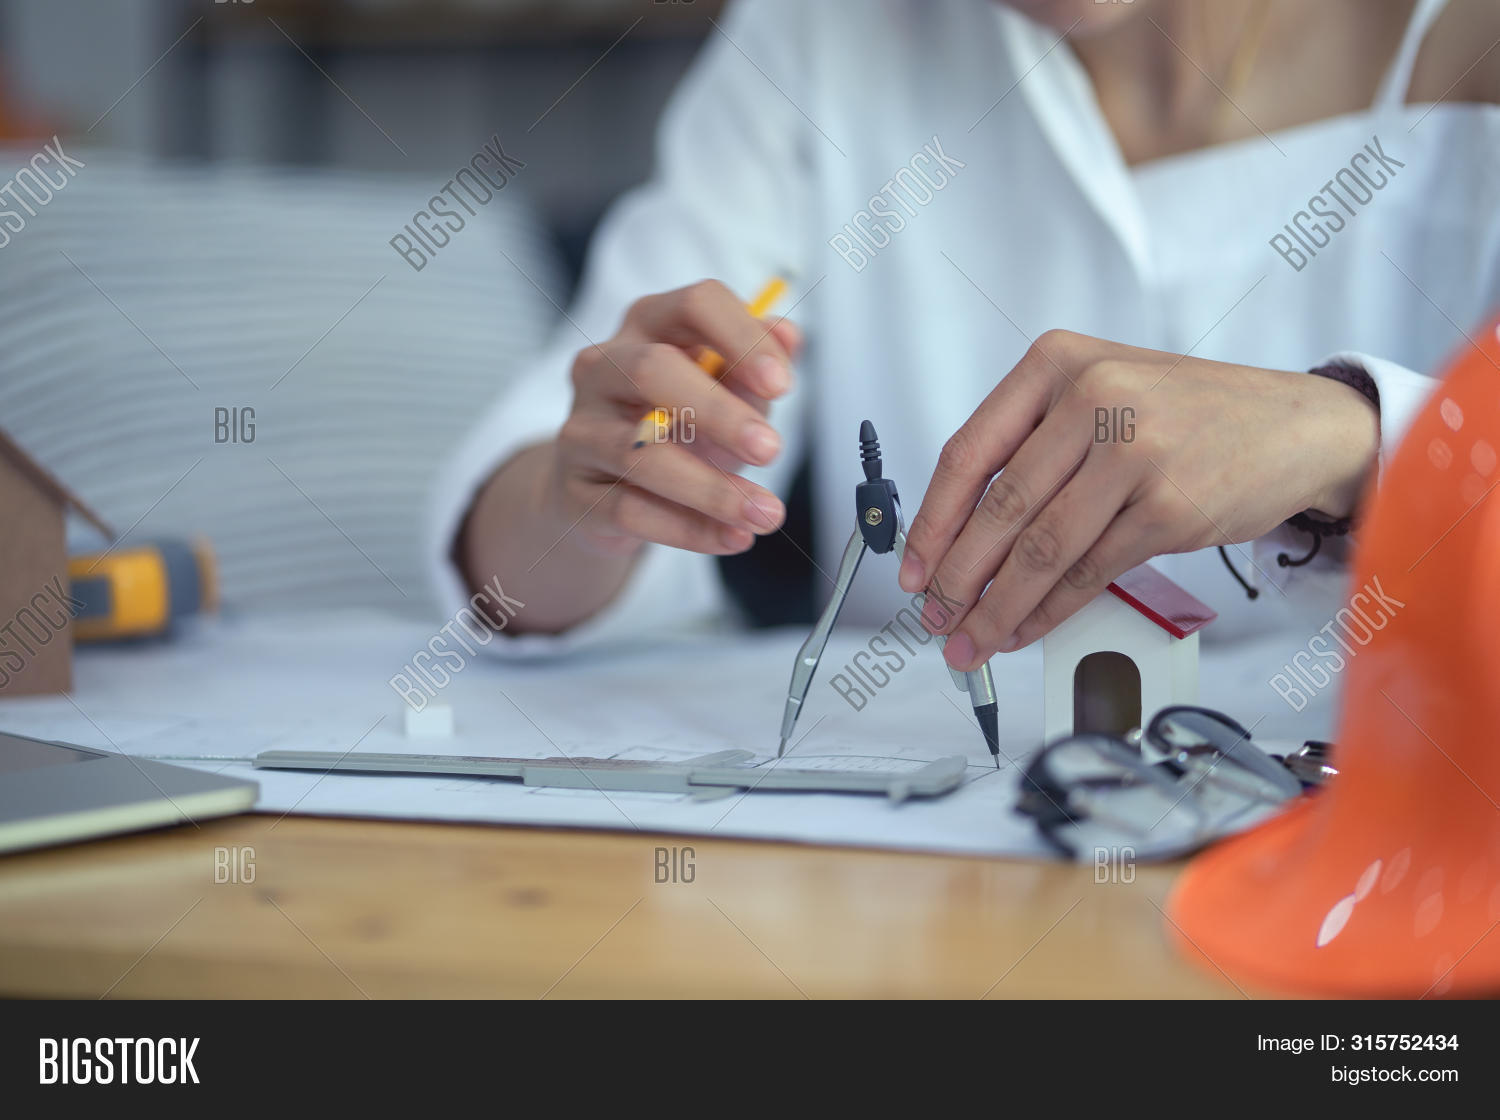 Hands Of Architect Or Engineer Using Compass Working With Blueprint On Desk In Office. Engineering T